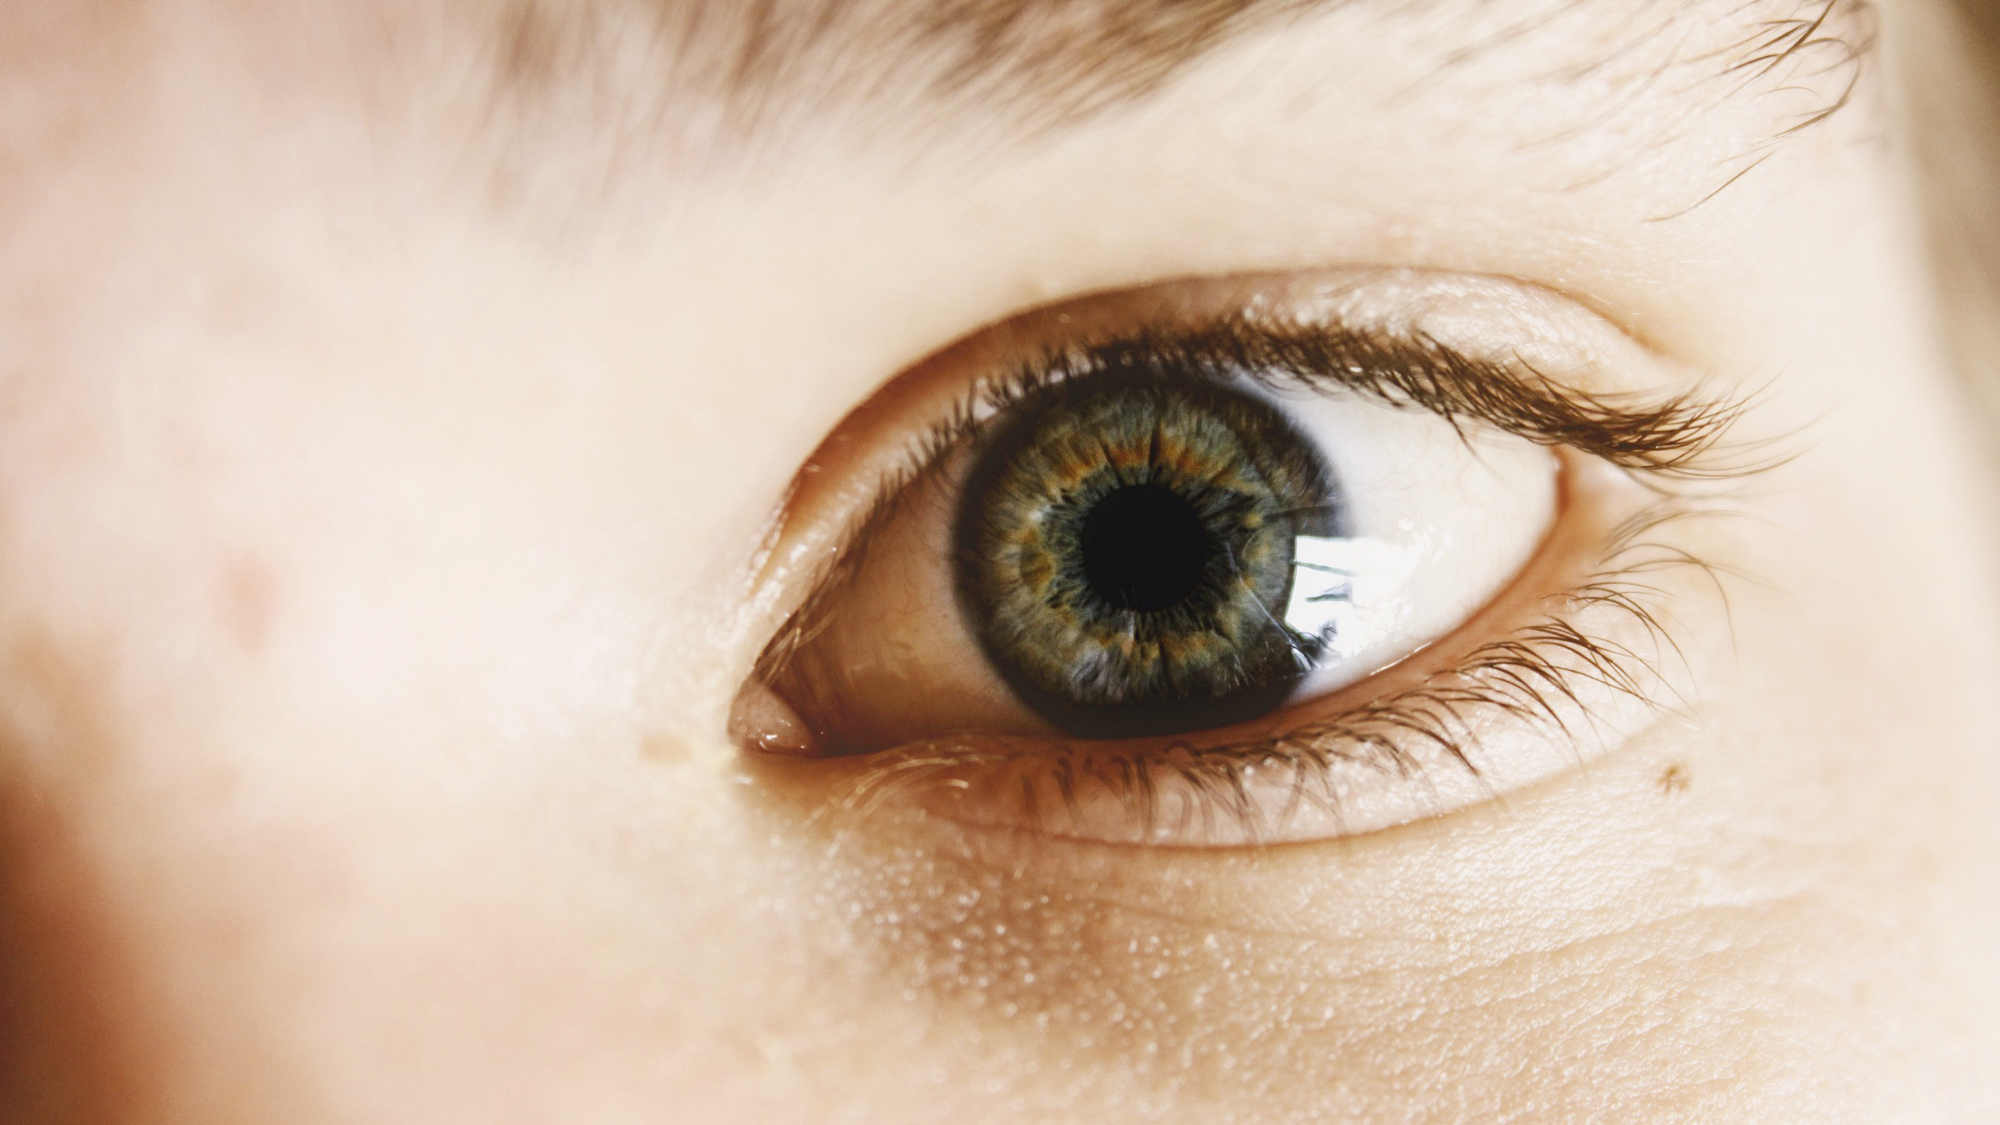 A close up picture of a person's left eye.